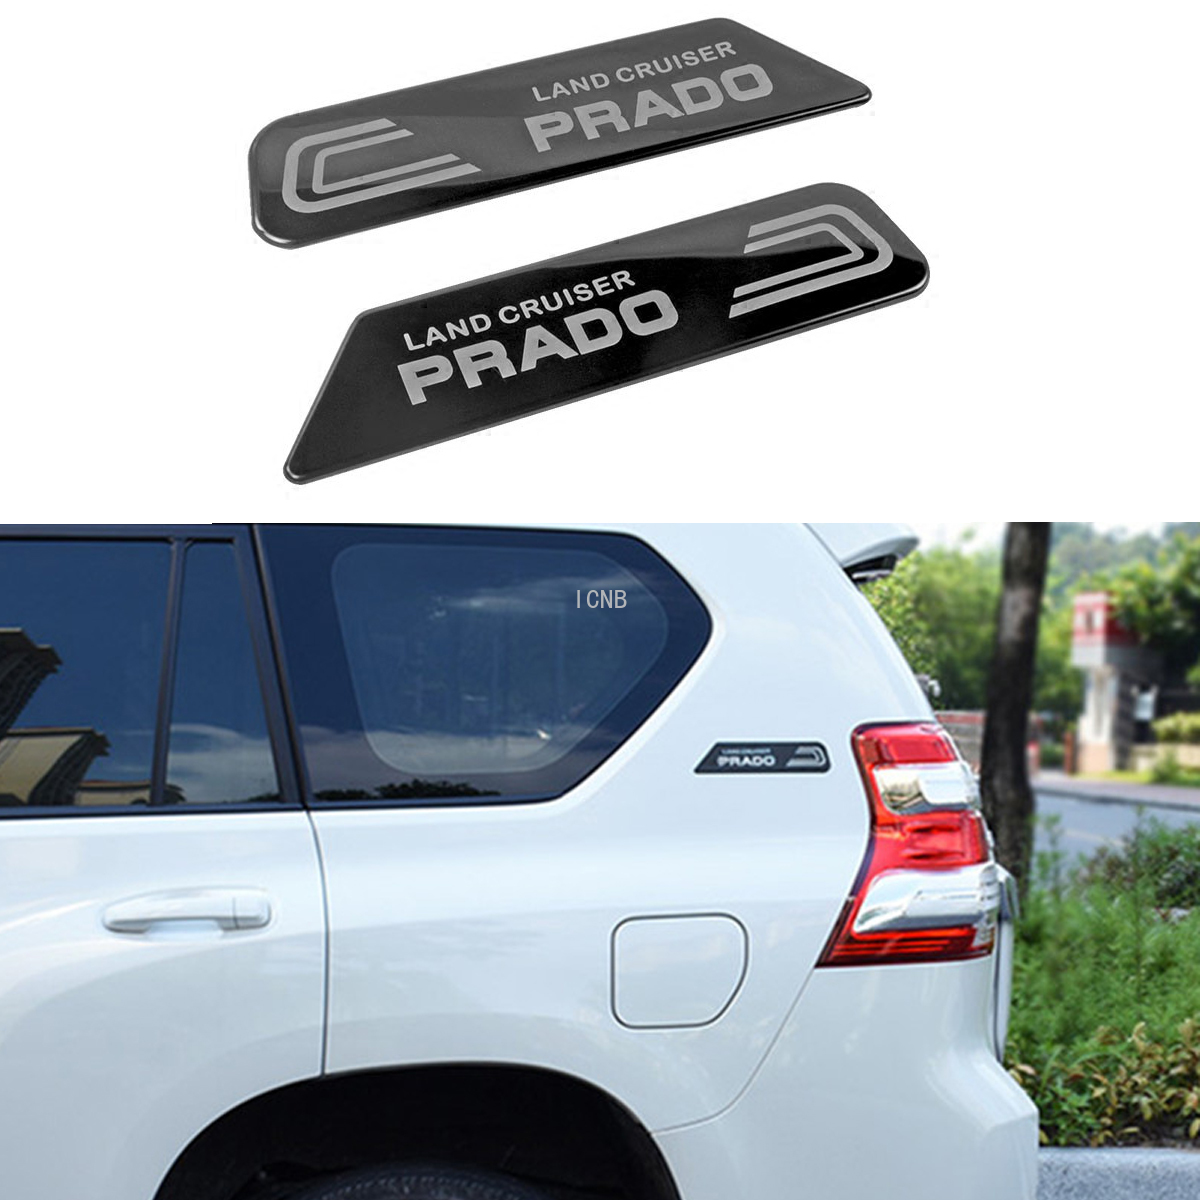 2PCS/set Stainless Steel Body Stickers for <font><b>Toyota</b></font> Land Cruiser <font><b>Prado</b></font> 120 150 2003-2009 2010-2013 2014 2015 2016-2019 <font><b>Accessories</b></font> image